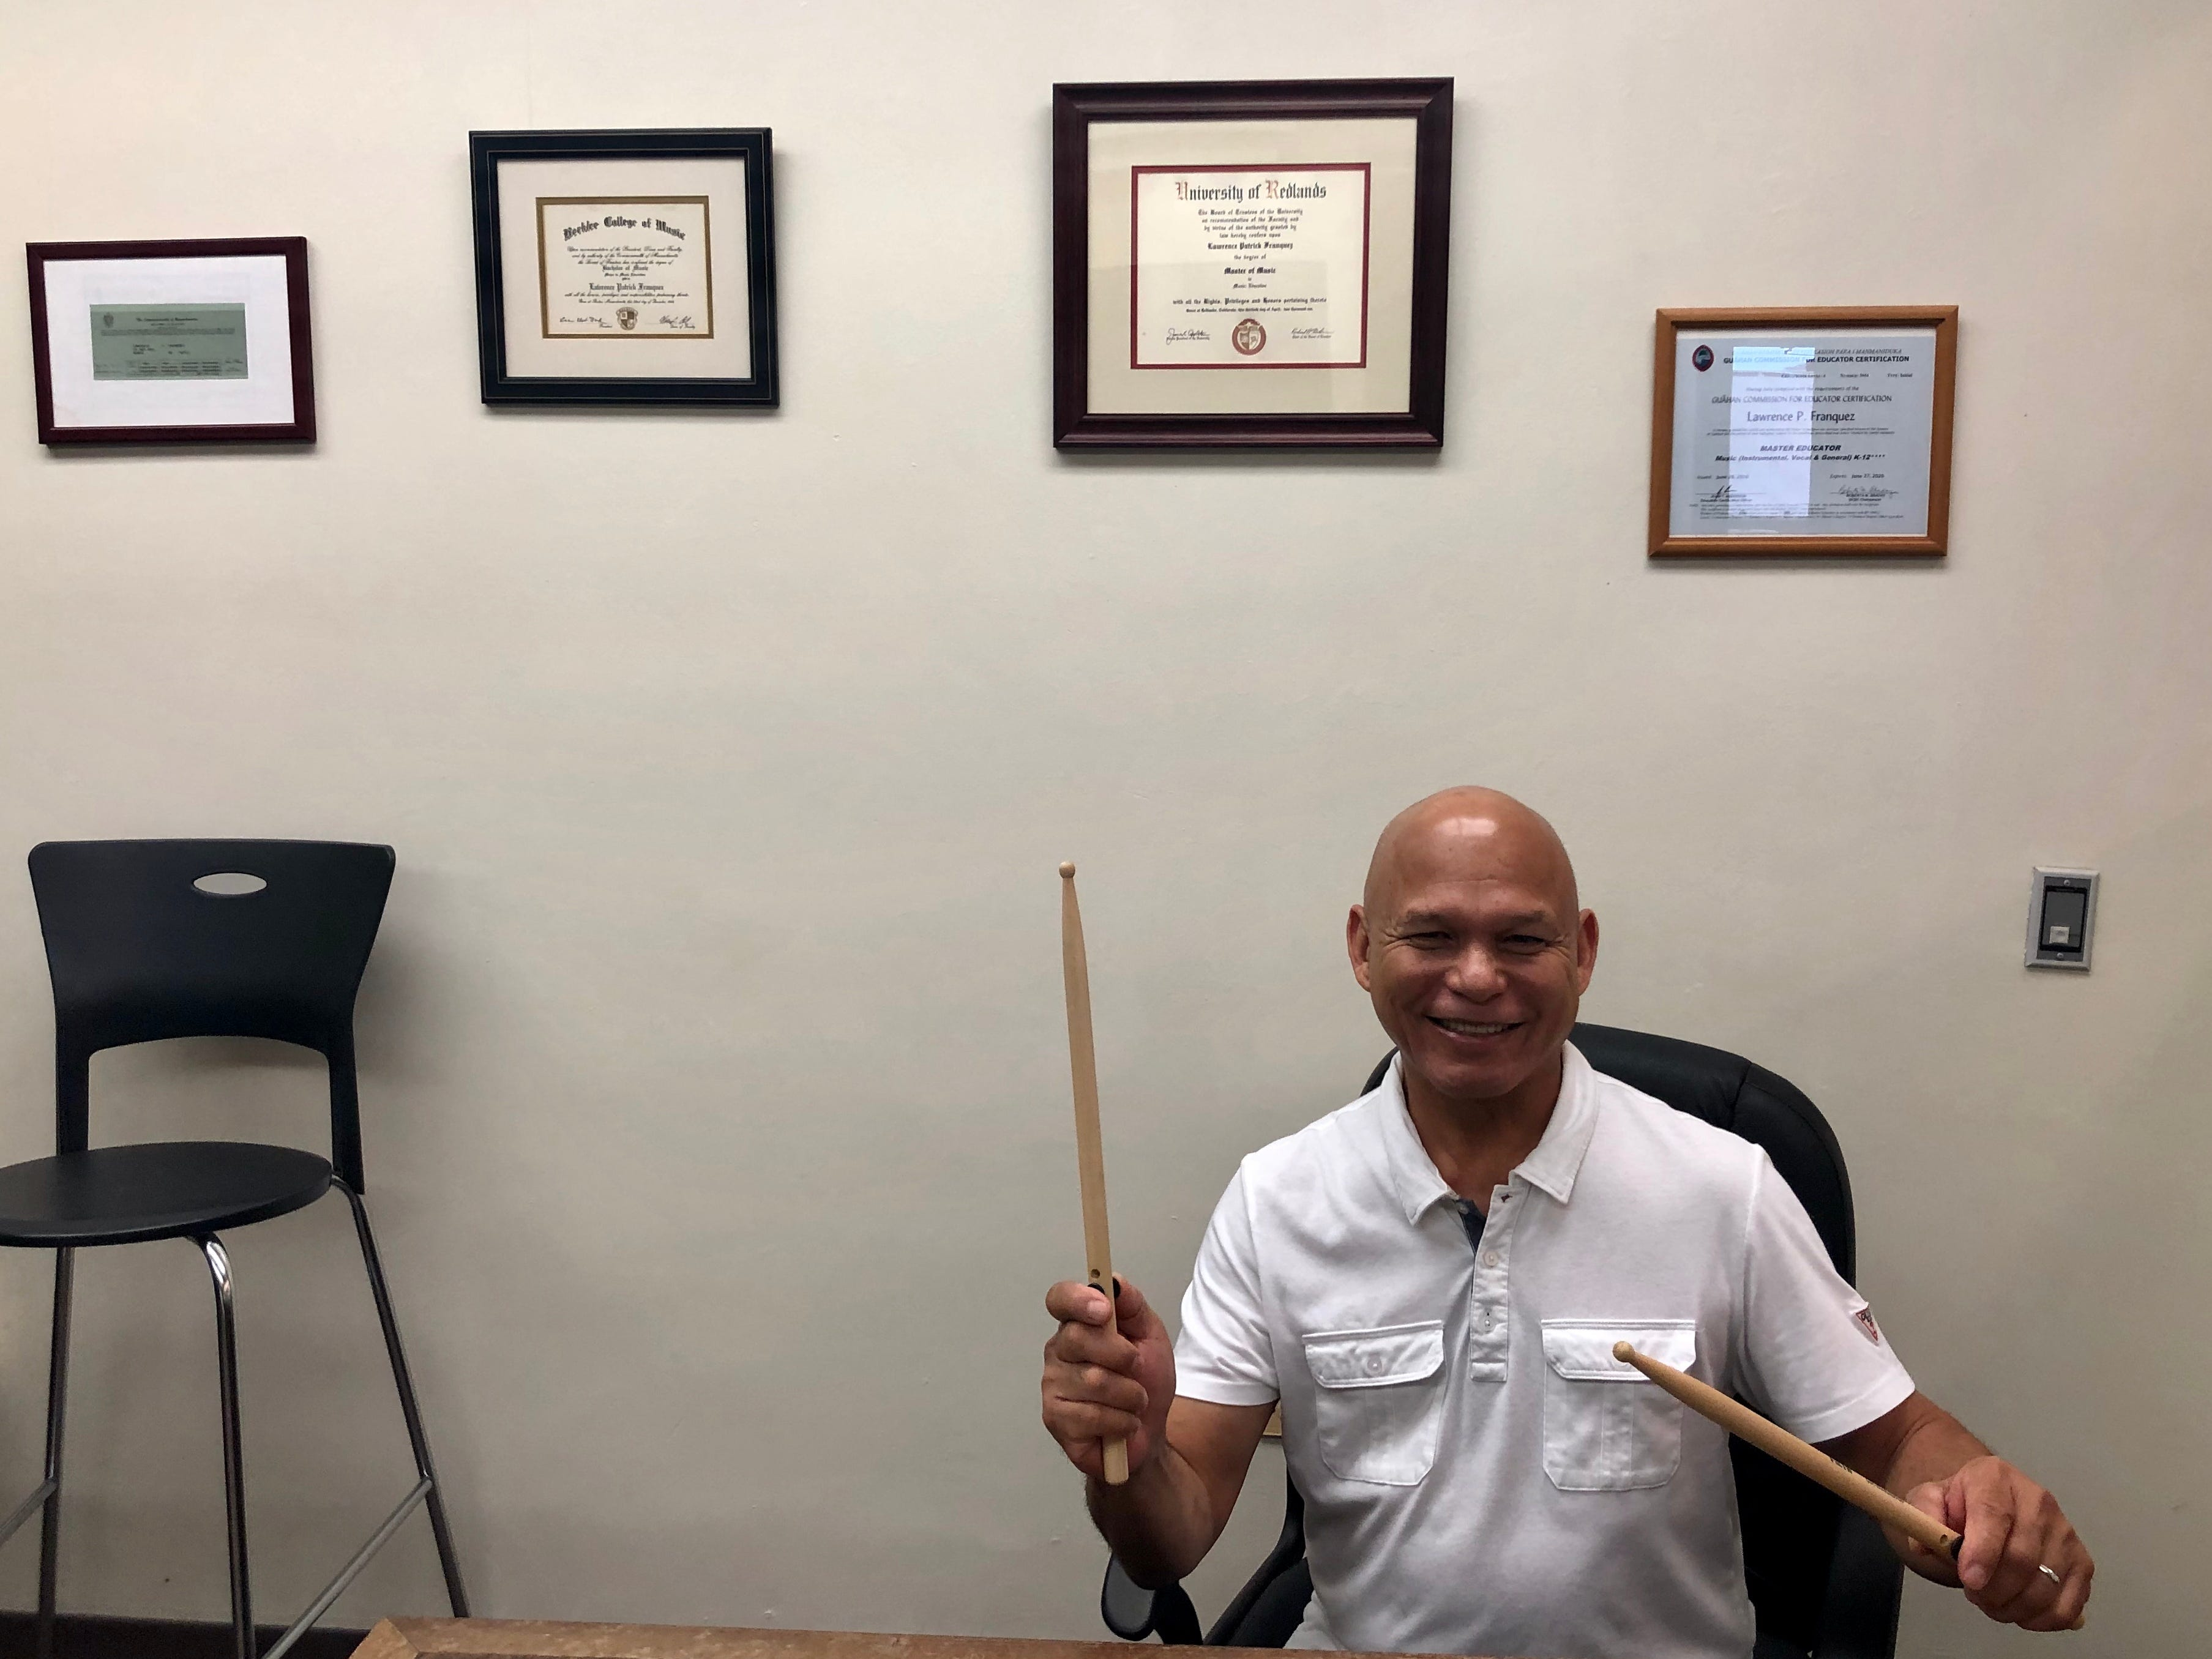 Larry Franquez, Southern High School band director and music professional pictured in front of his achievements on March 15, 2019.